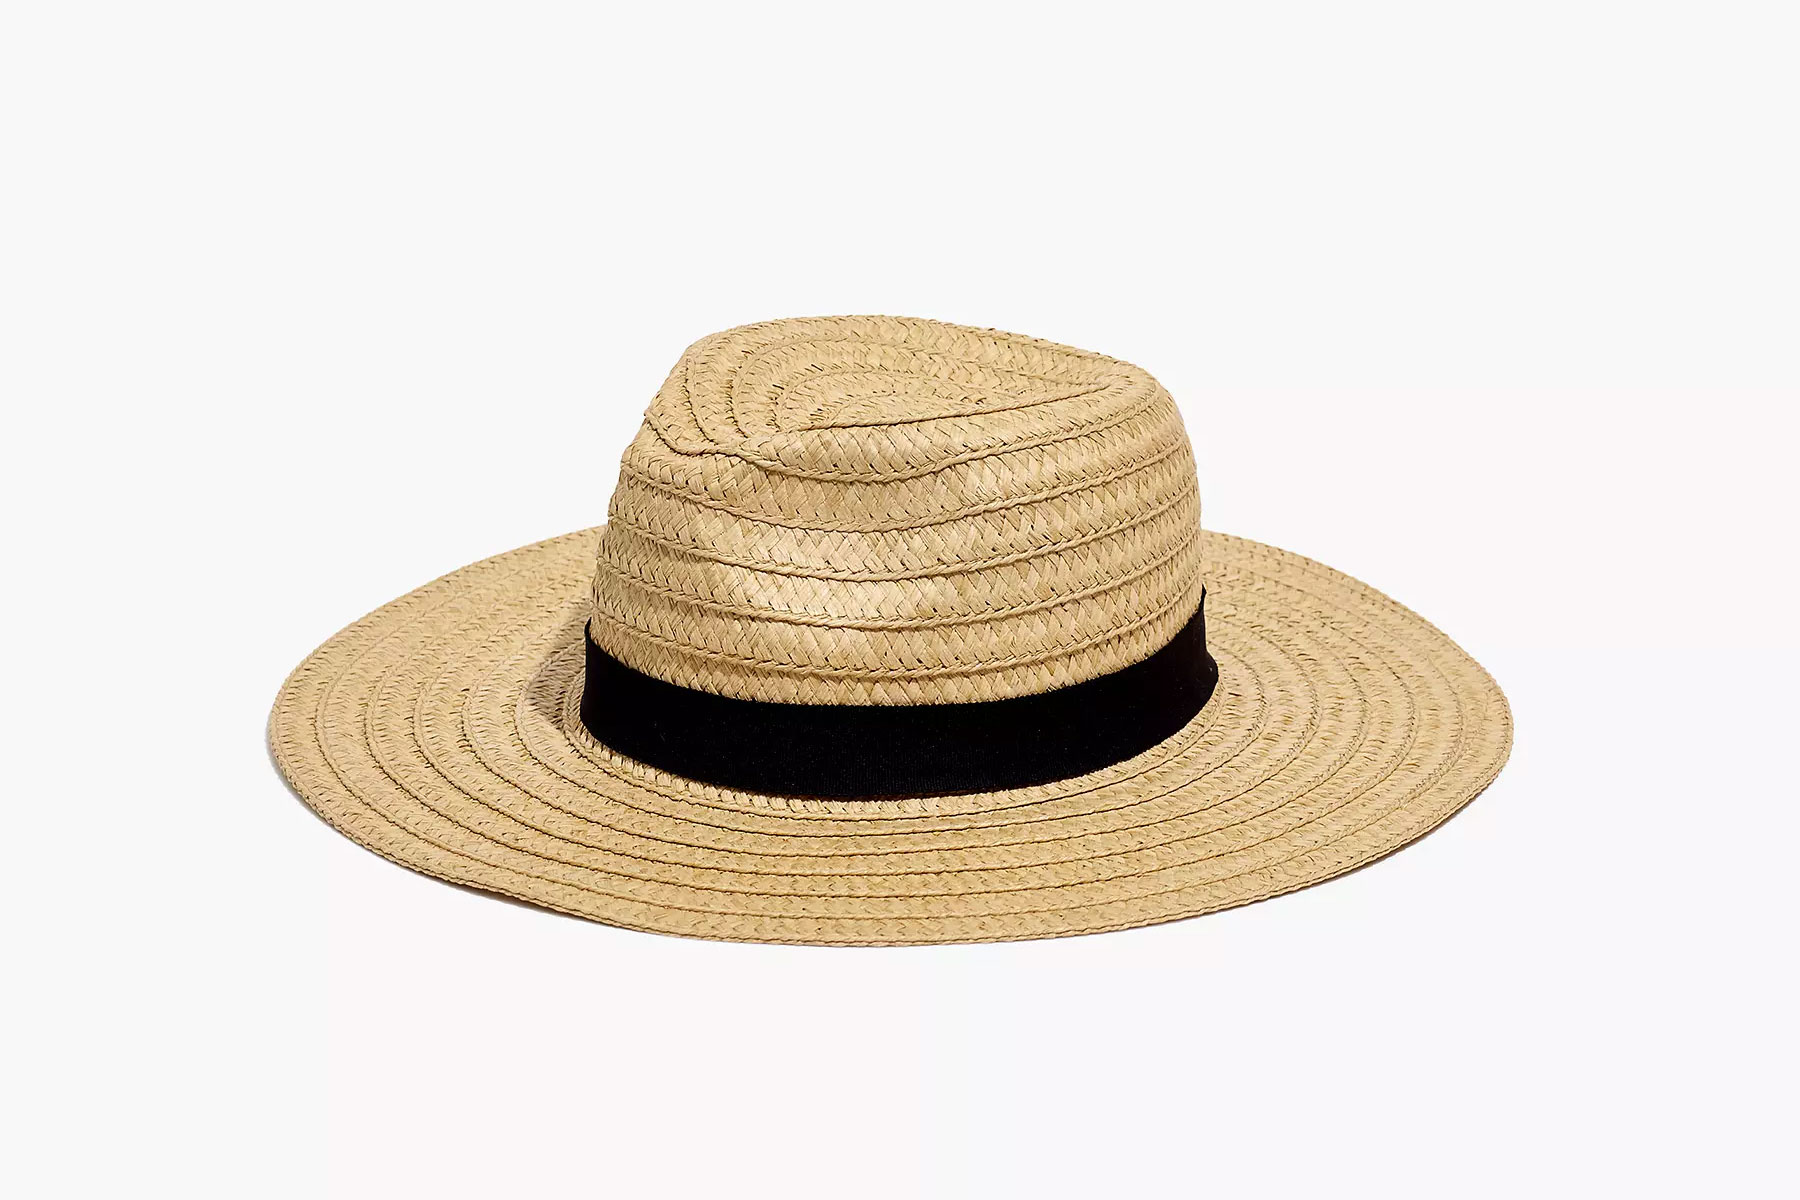 Woven straw hat with black band